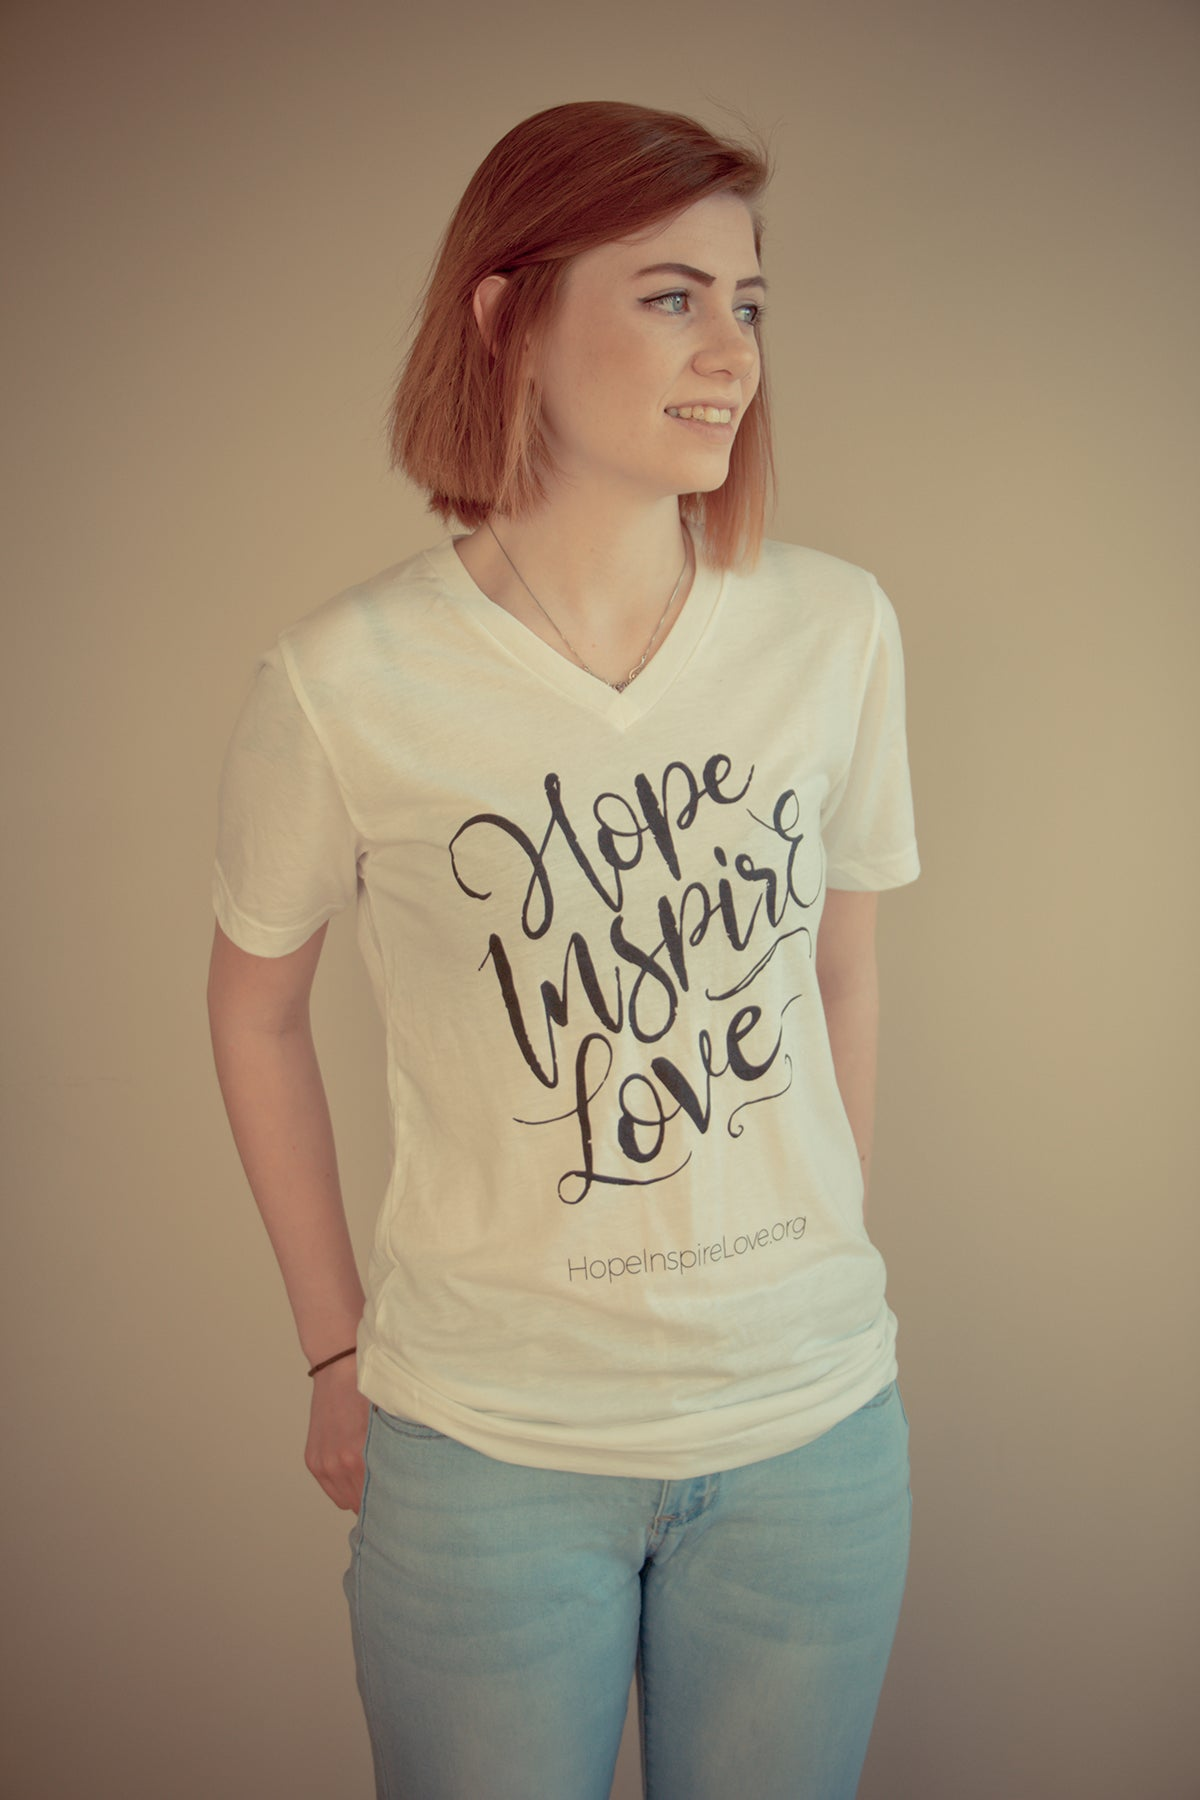 Hope Inspire Love - White V-Neck T-Shirt